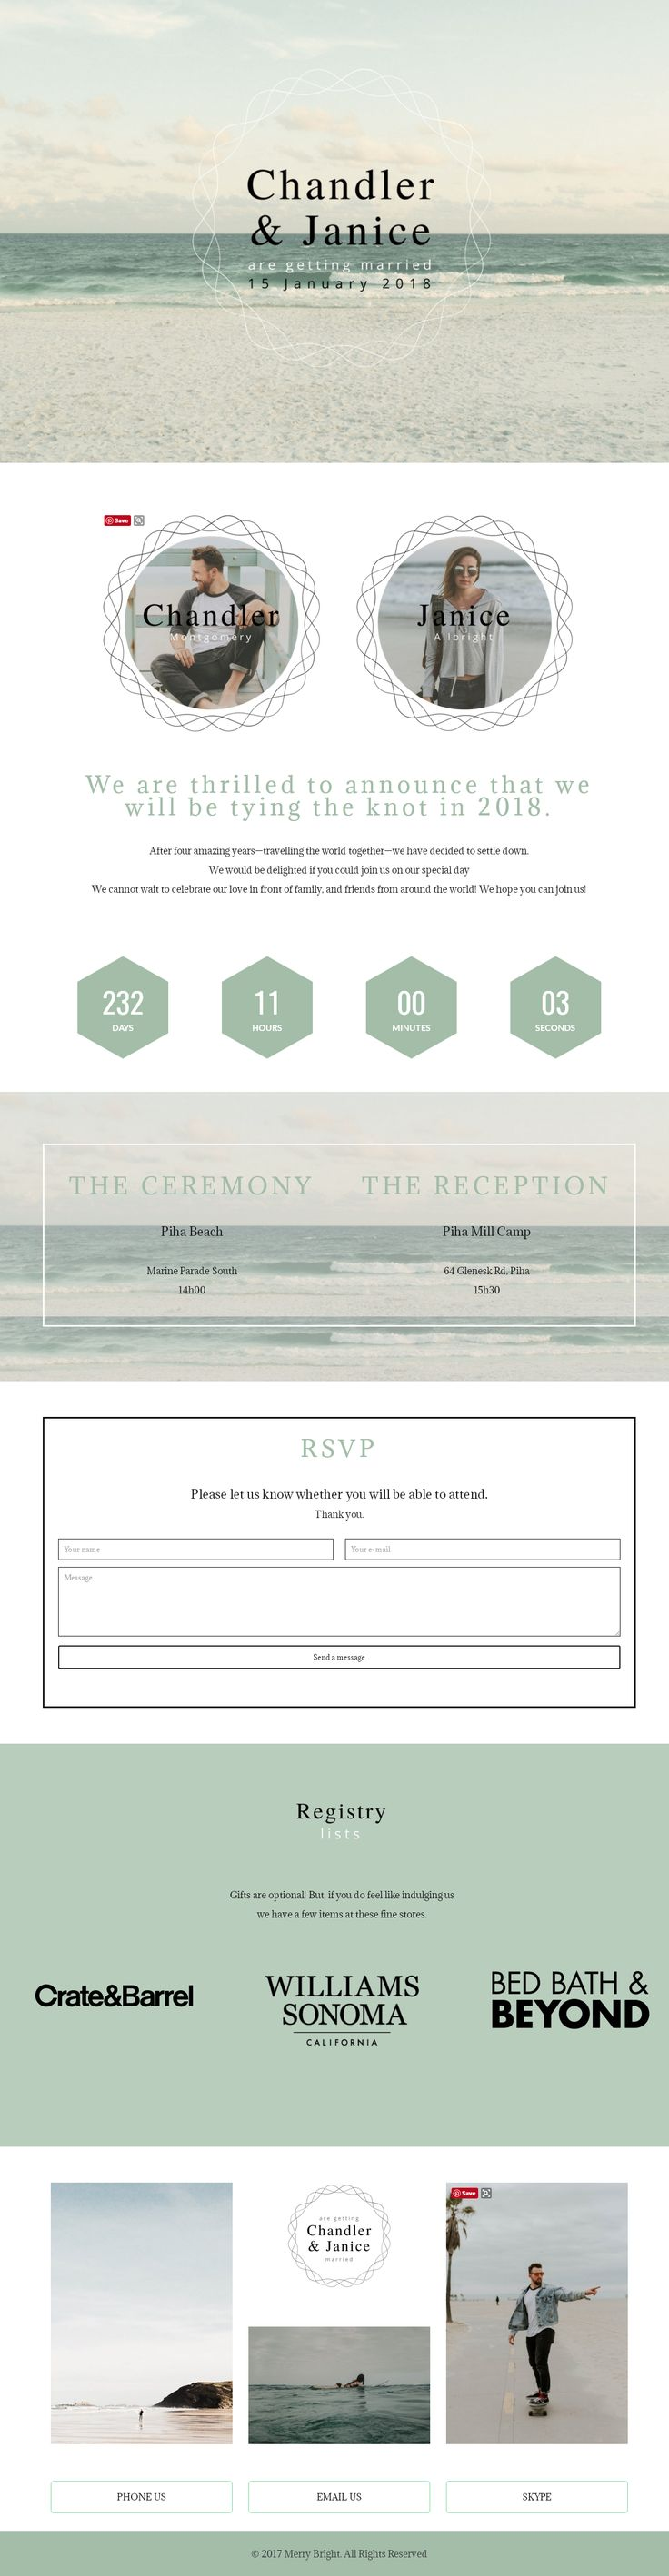 Wedding websites ideas. The Beach Wedding website. We do it all for you. No more crappy templates! Wedding website examples.